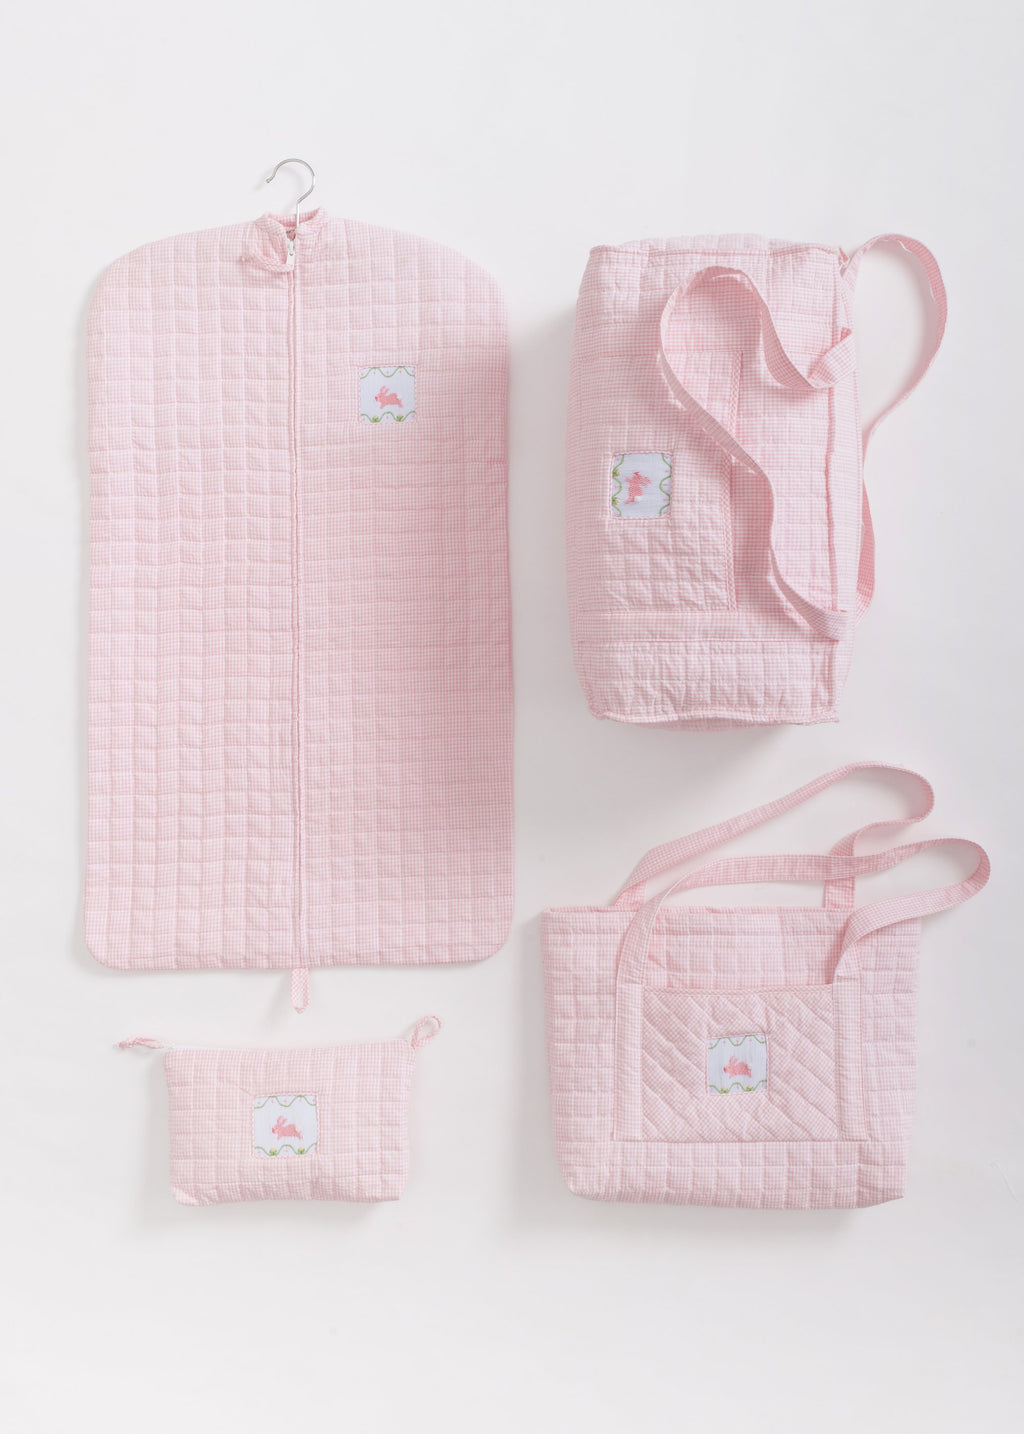 Quilted Pink Bunny Tote Bag - Born Childrens Boutique